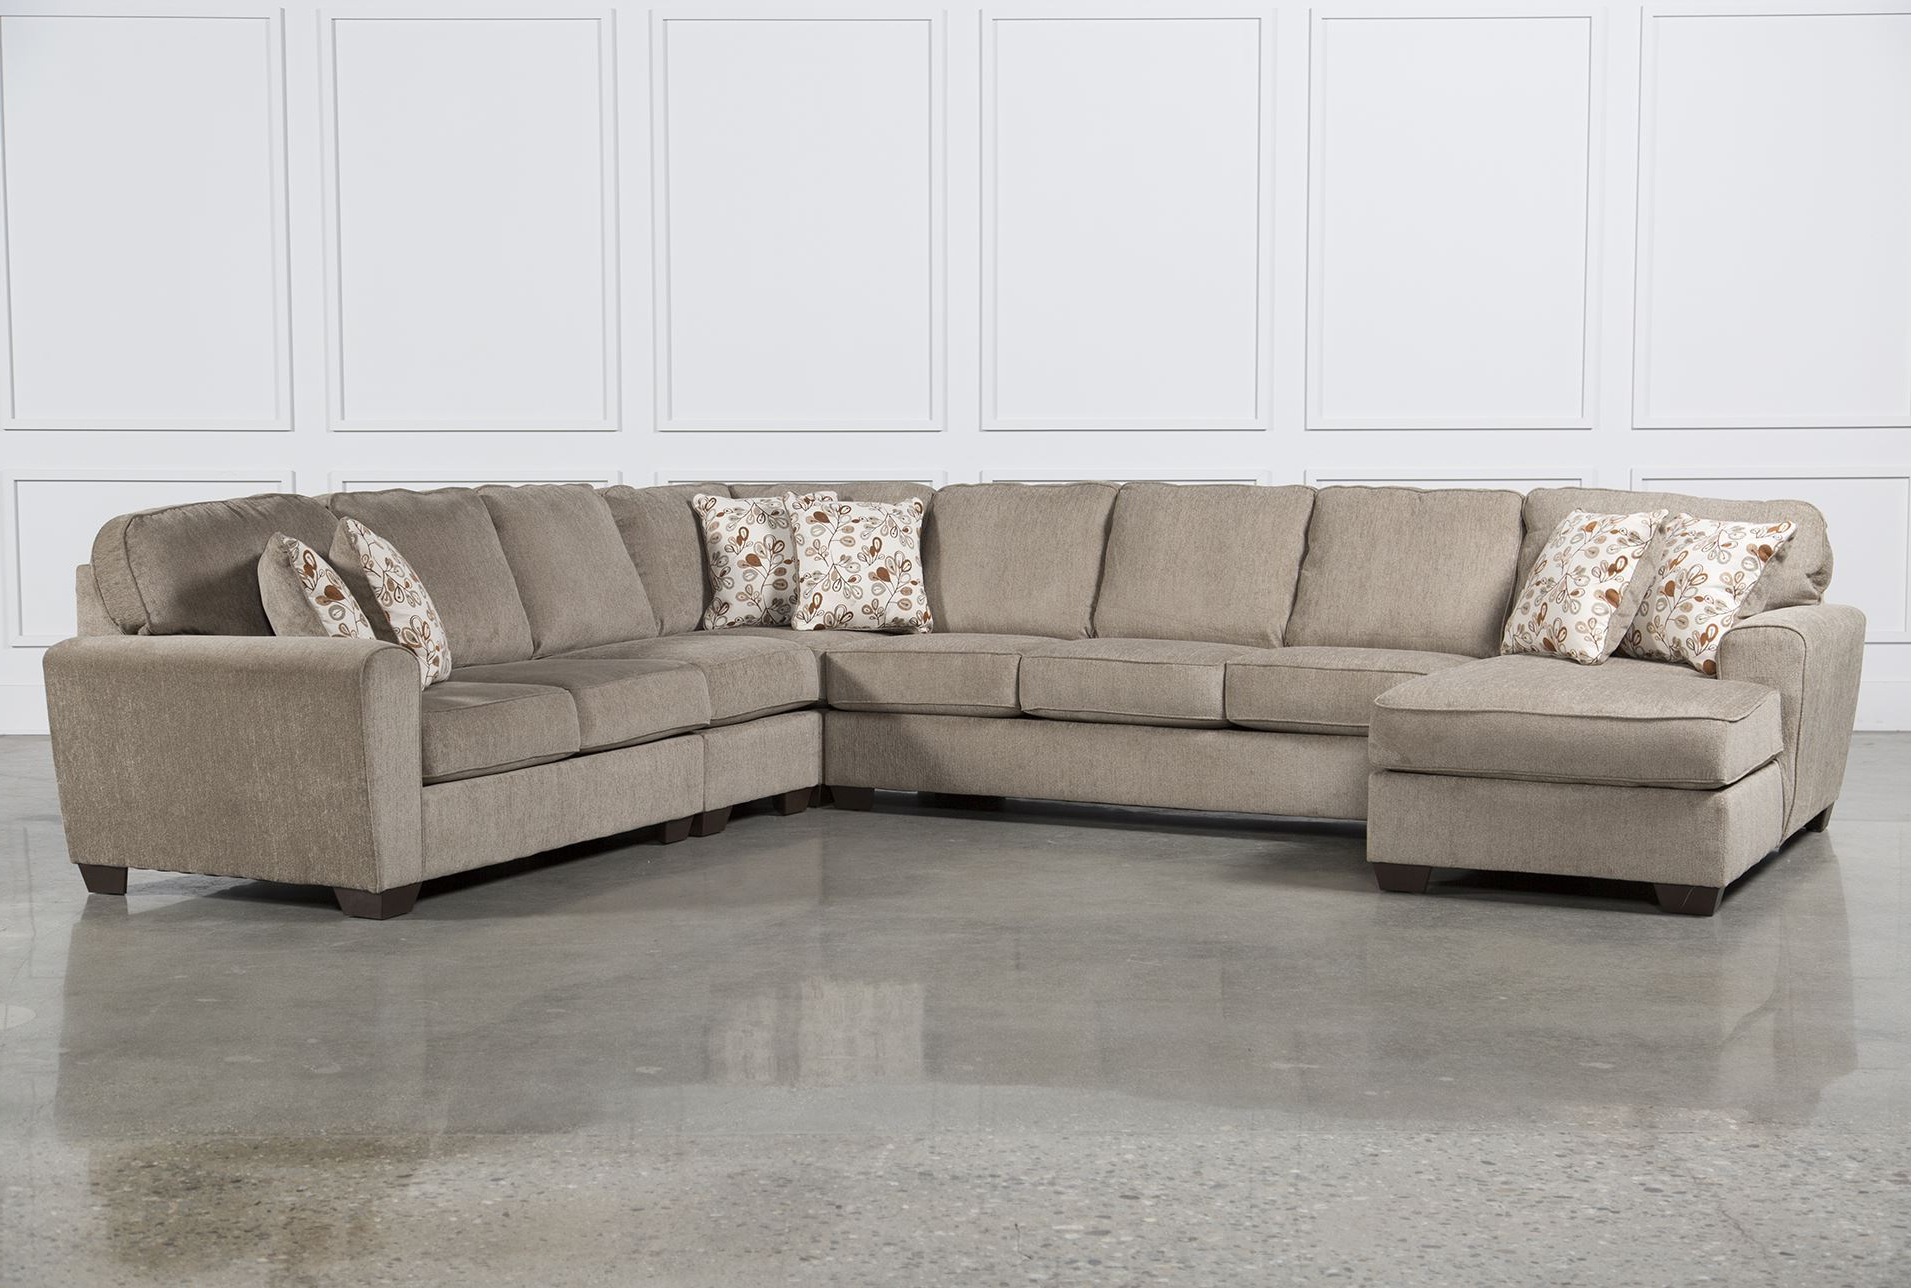 Kerri 2 Piece Sectionals With Raf Chaise With Regard To Fashionable Ideas Of Laf Chaise On Kerri 2 Piece Sectional W Laf Chaise Living (Gallery 17 of 20)